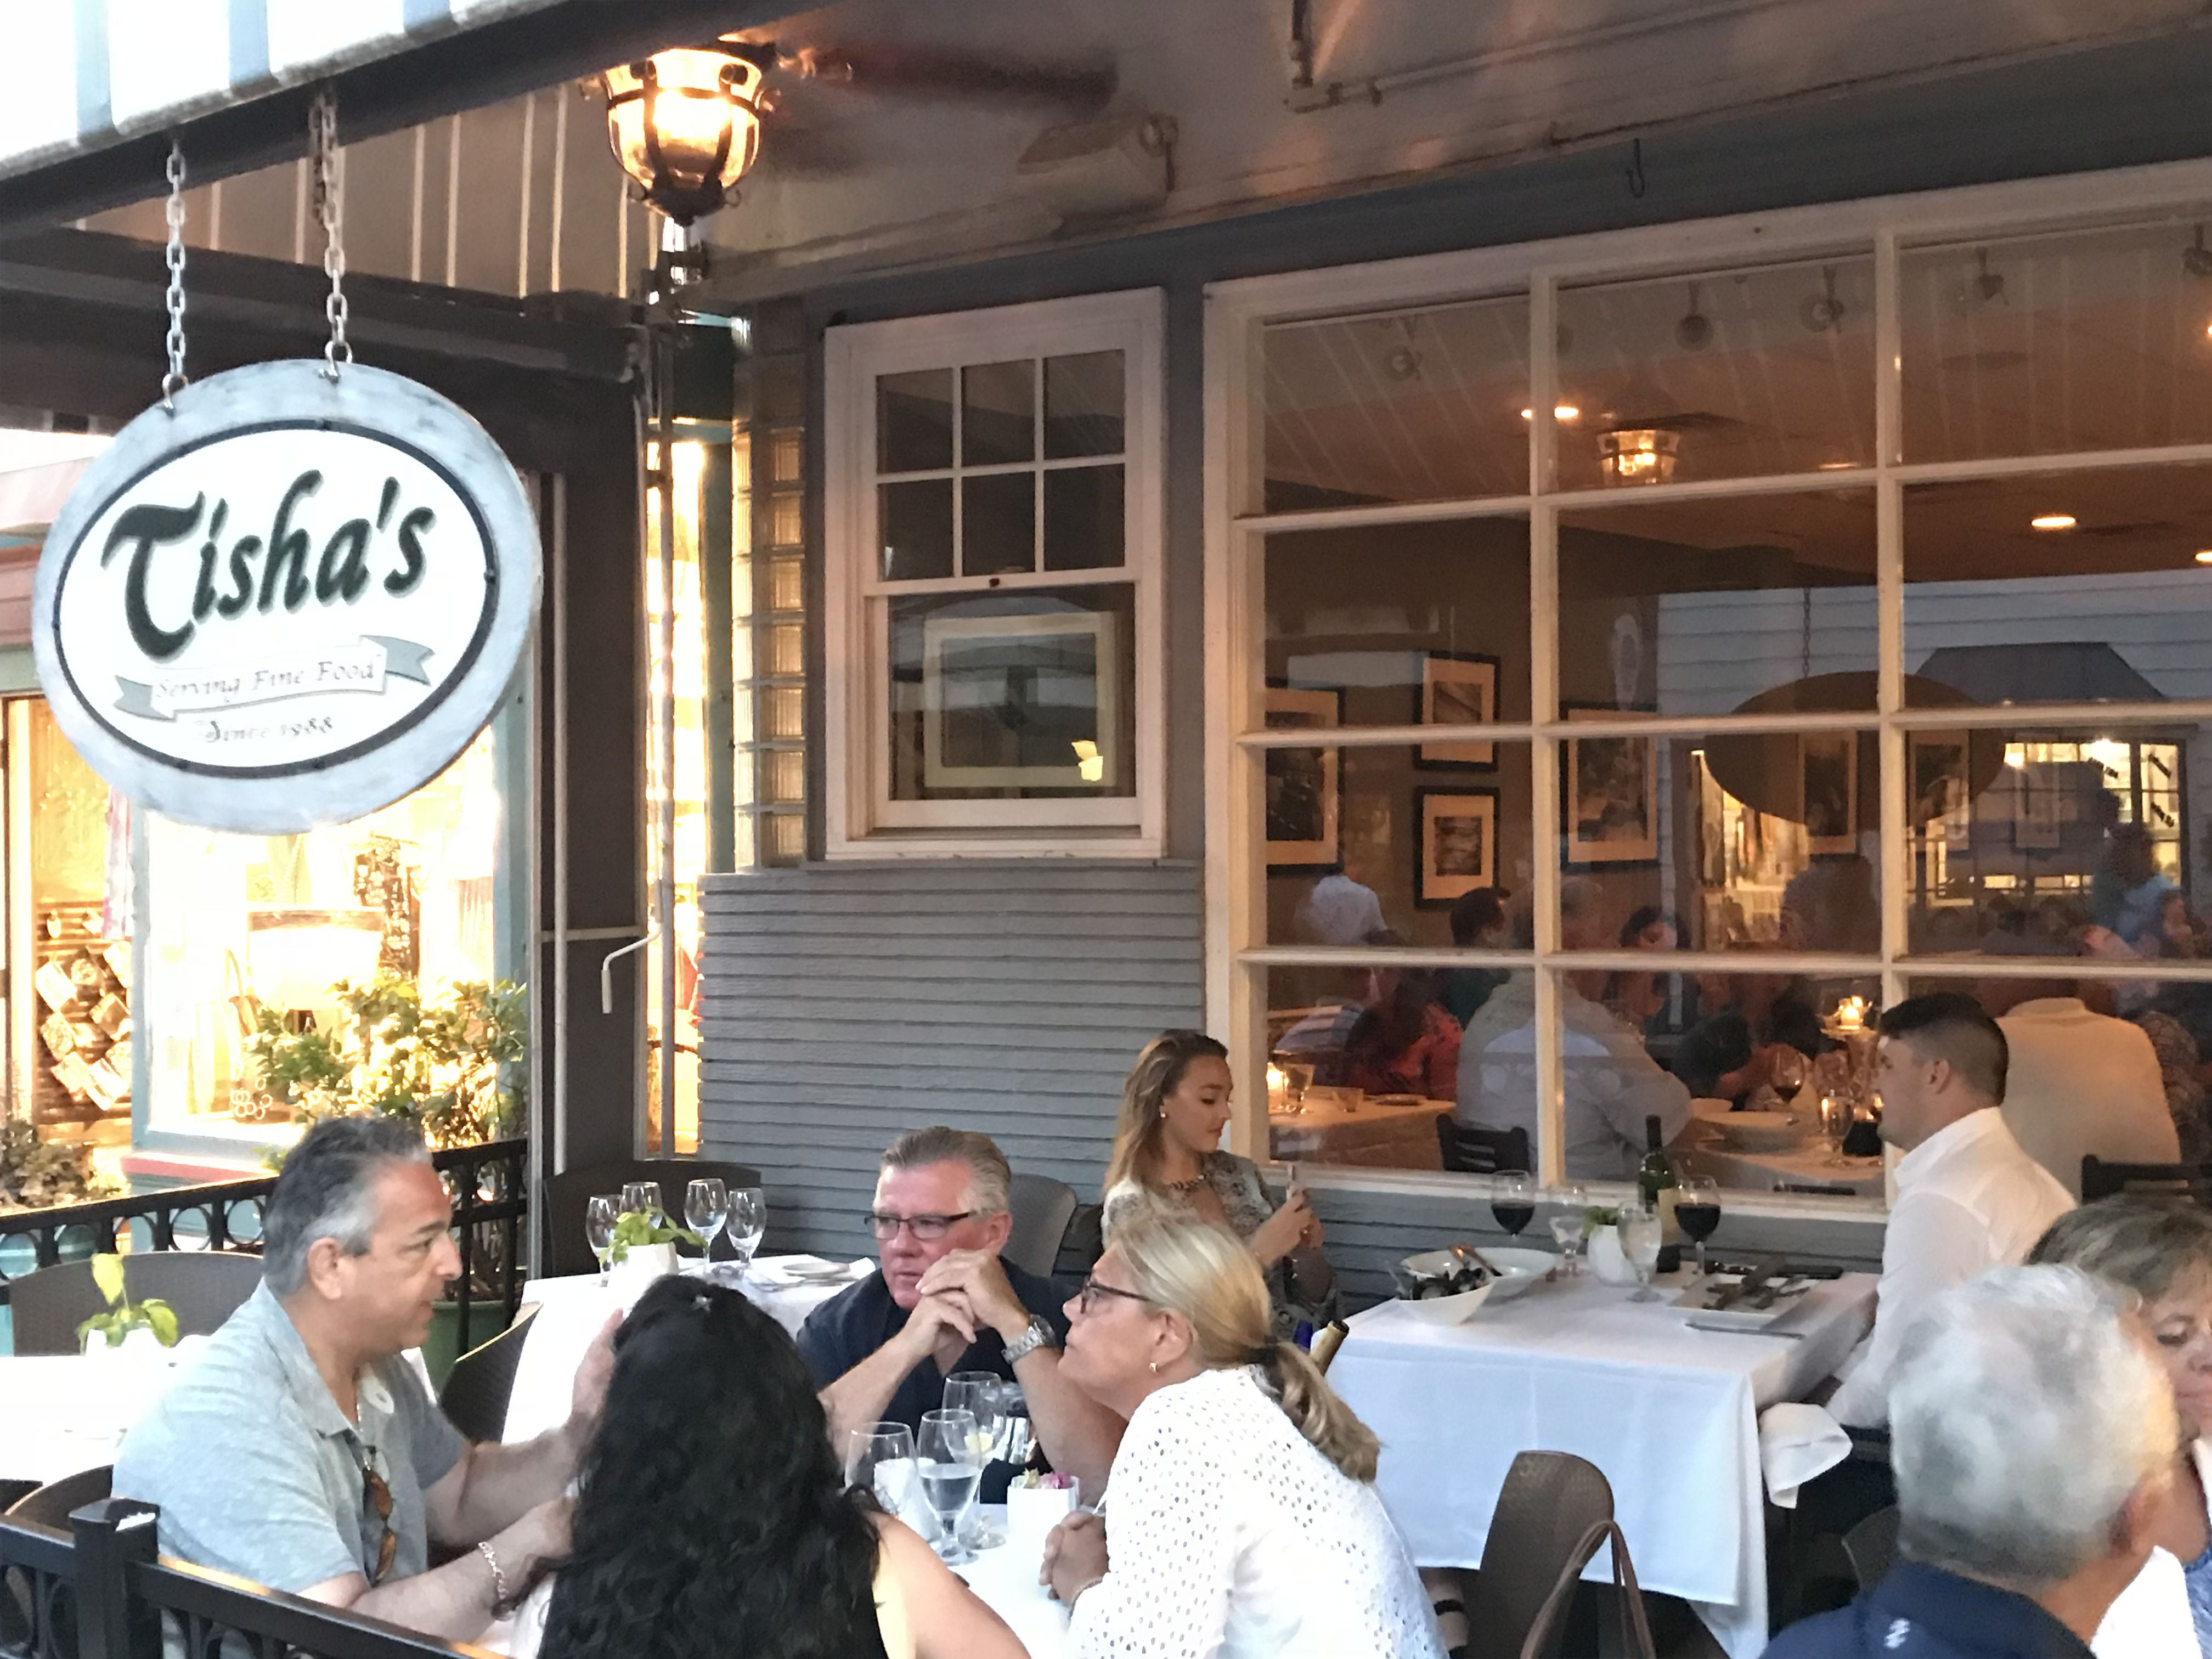 Tisha S Locals Love Tisha S For Fine Dining It Has Been A Popular Spot Downtown For Over 30 Years At 322 Washingt Cape May Restaurants Cape May Magnolia Room